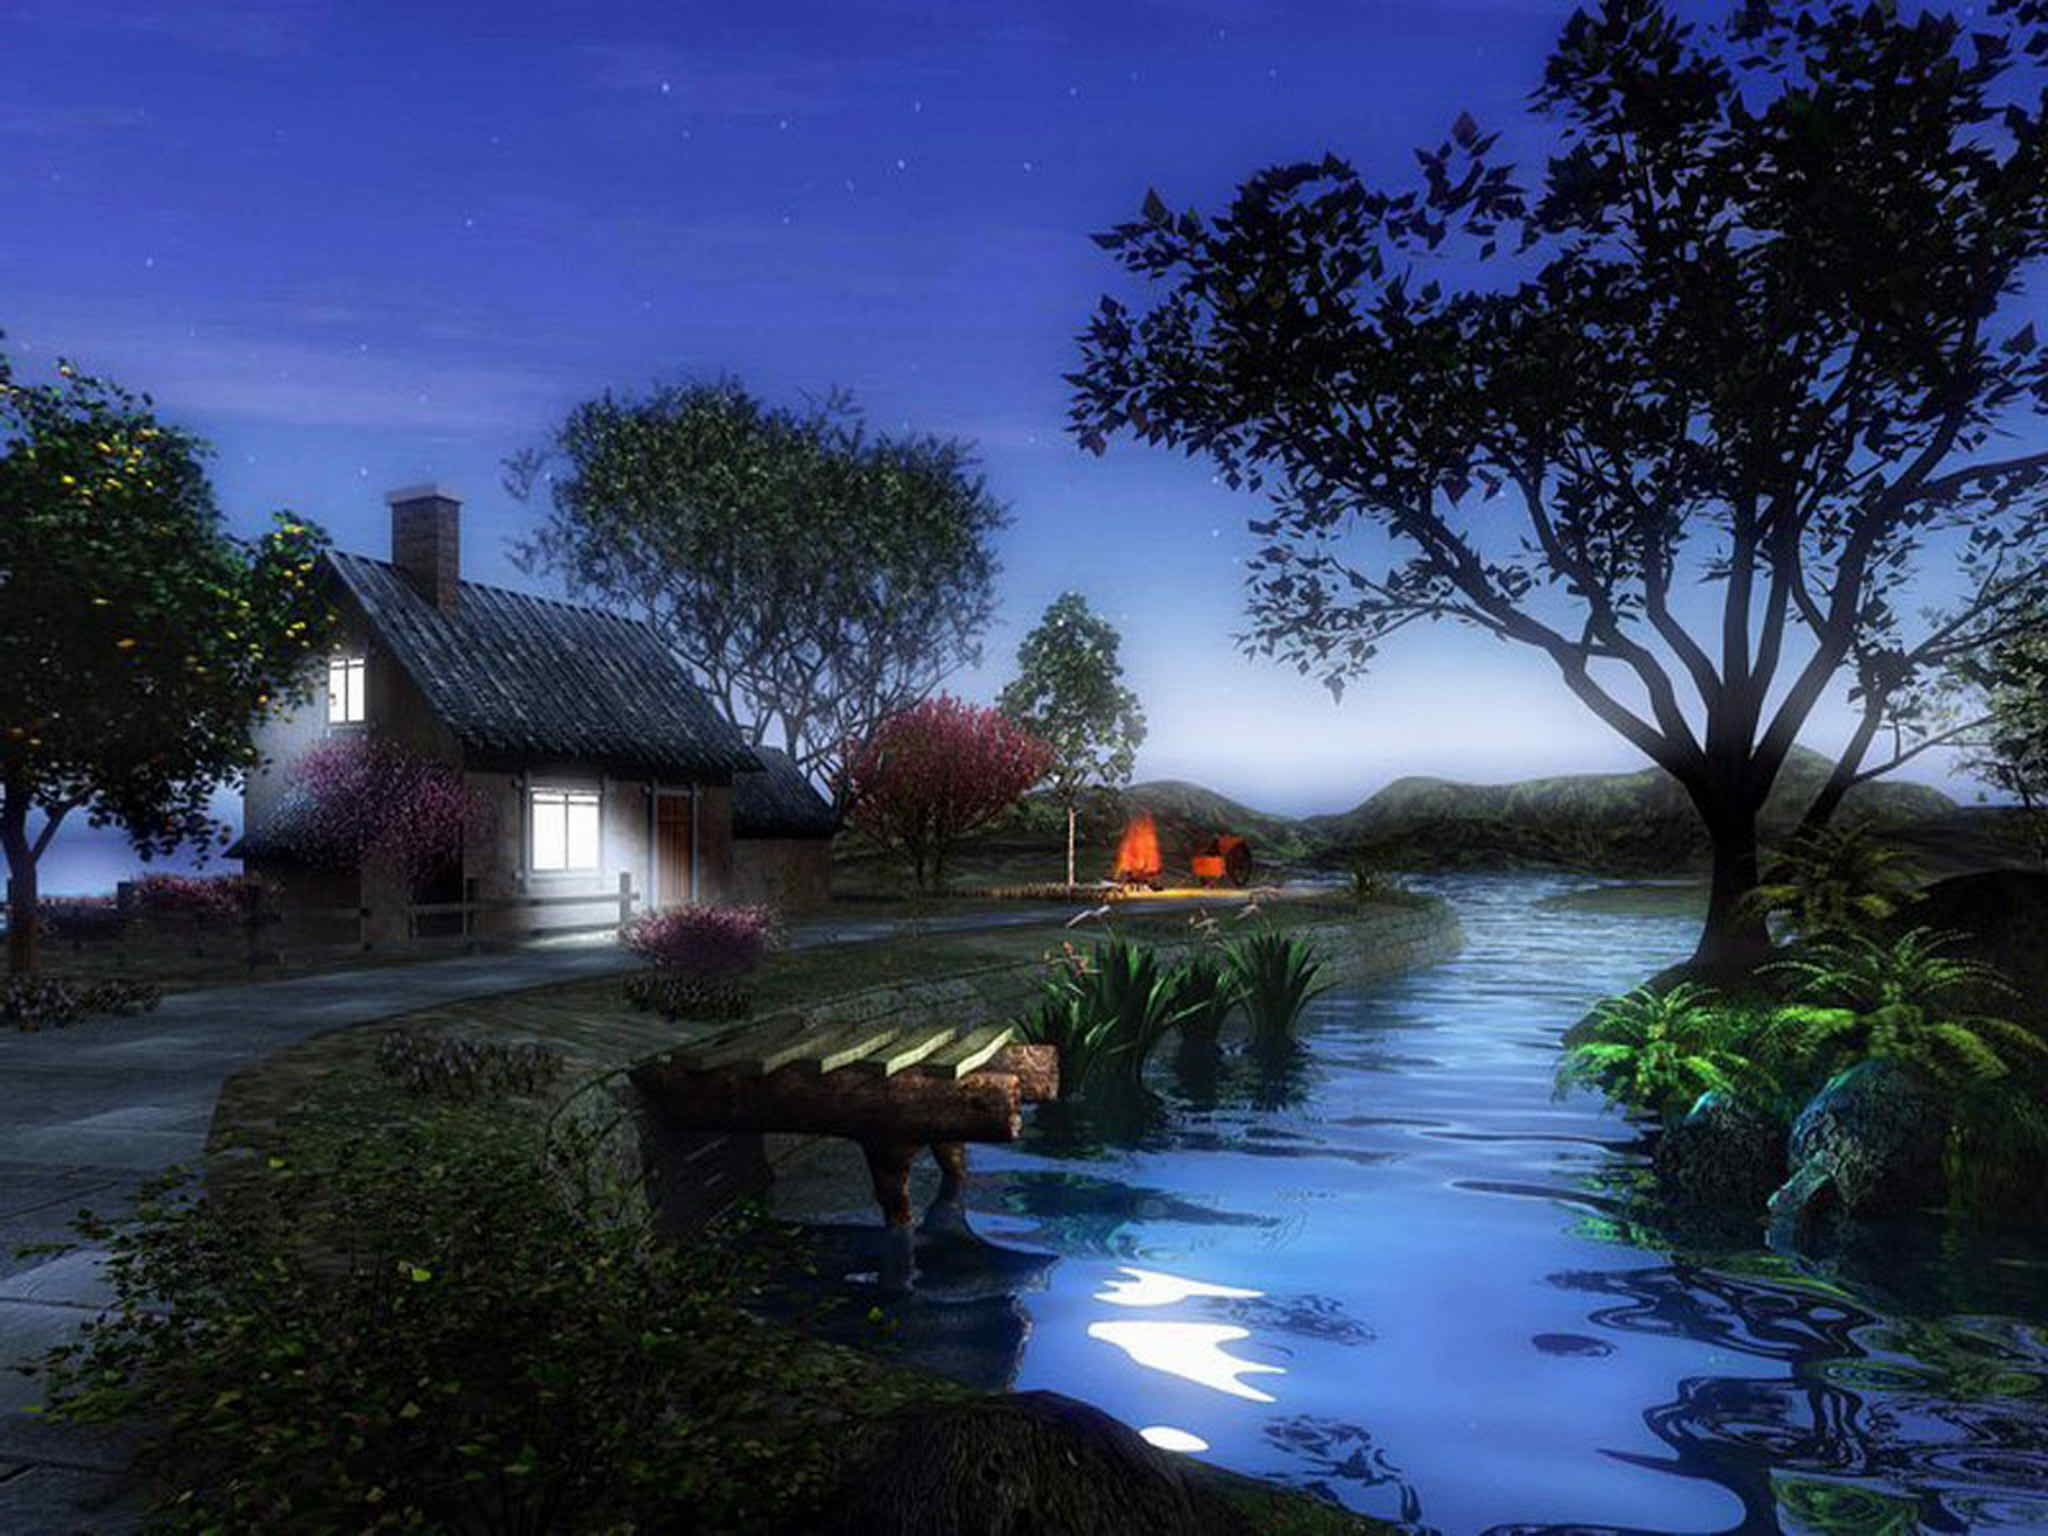 House 3d hd wallpapers nature for desktop 2902 wallpaper for Beautiful house hd image